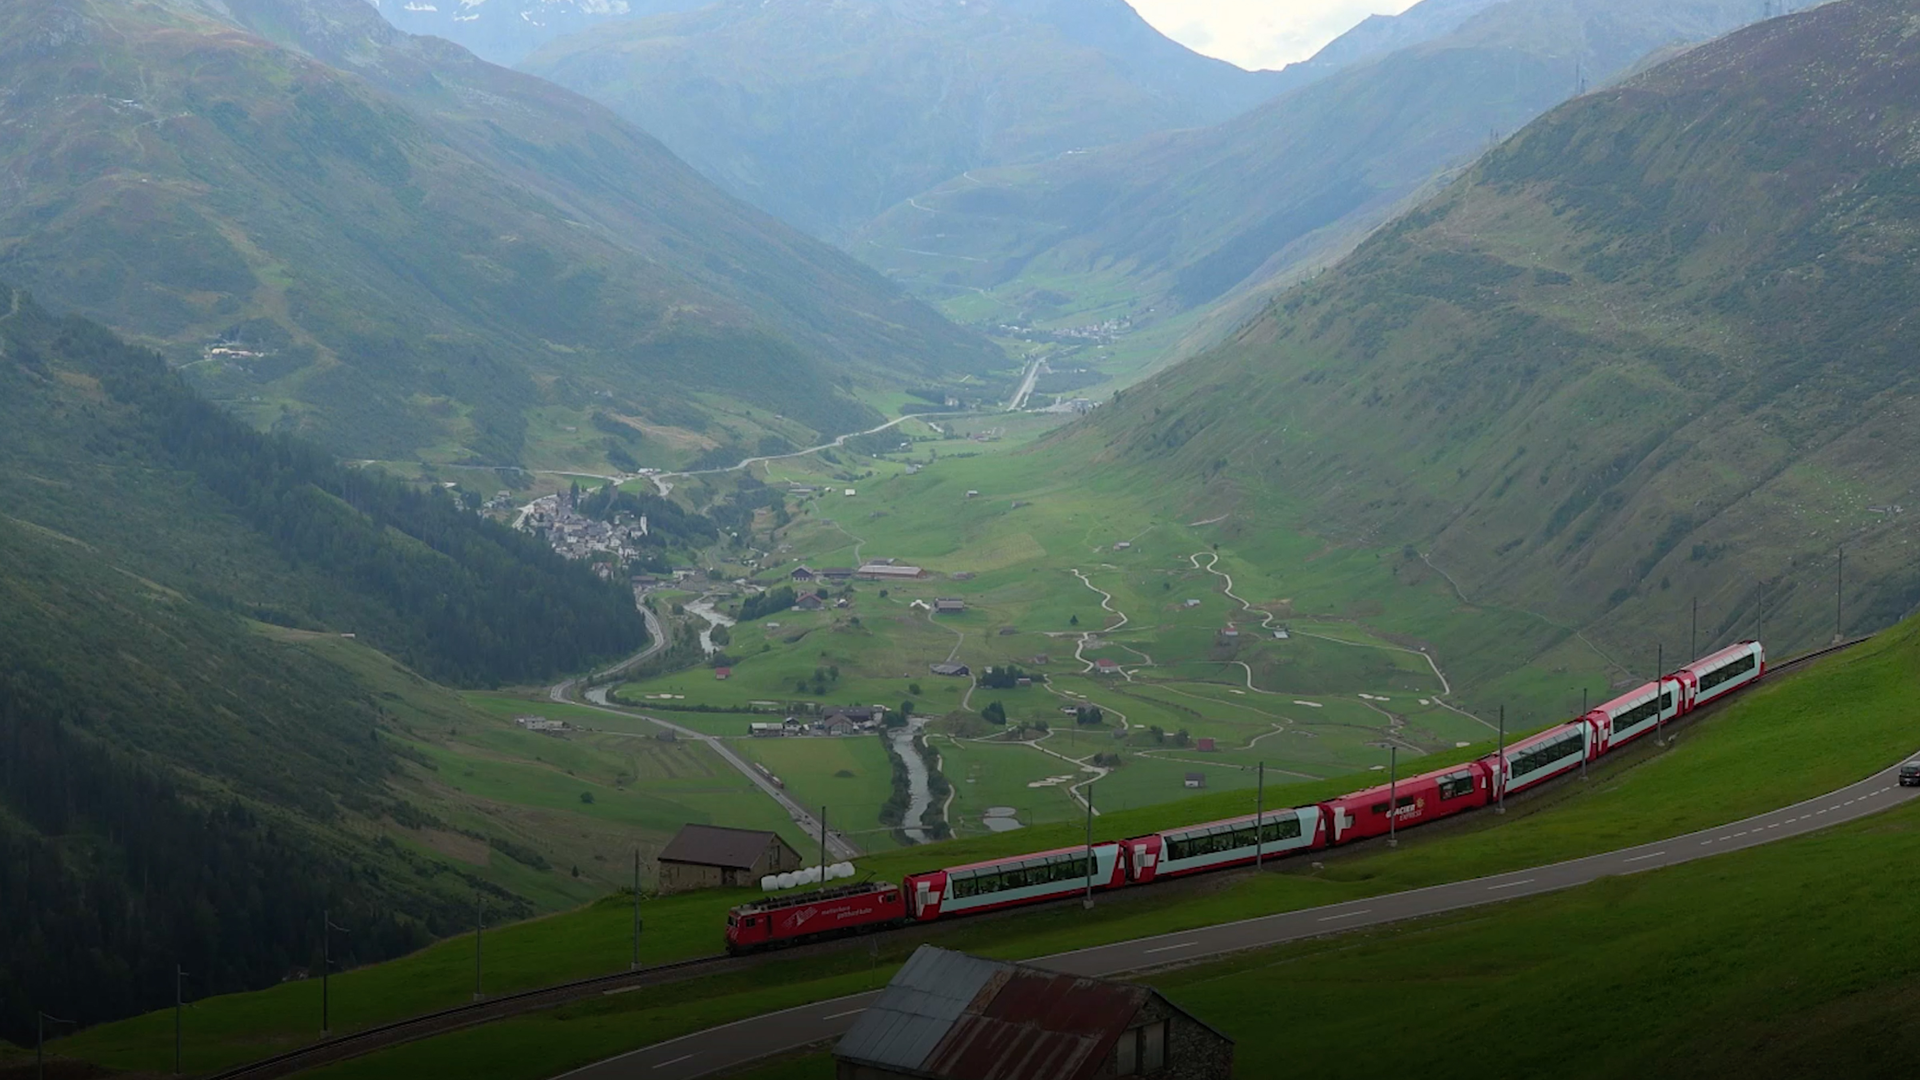 National Geographic Says These Are The Most Scenic Train Trips in the World